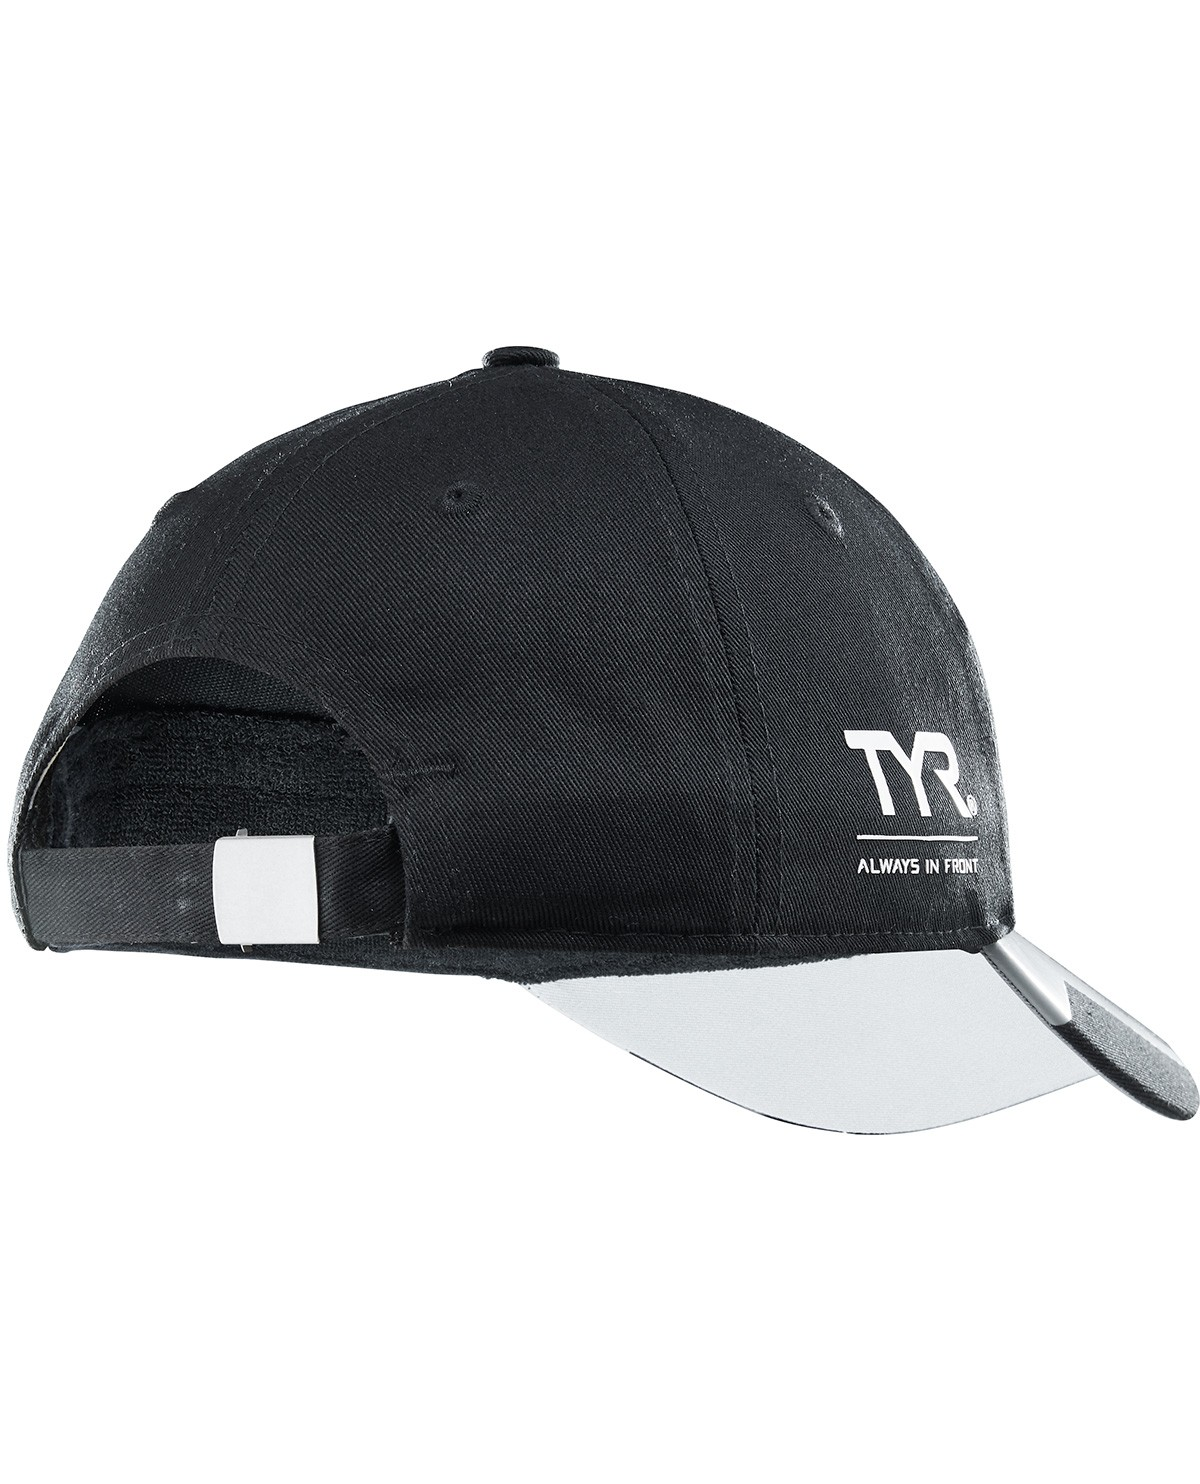 7f9debcb01387 TYR A.I.F. Fast Track Adjustable Hat